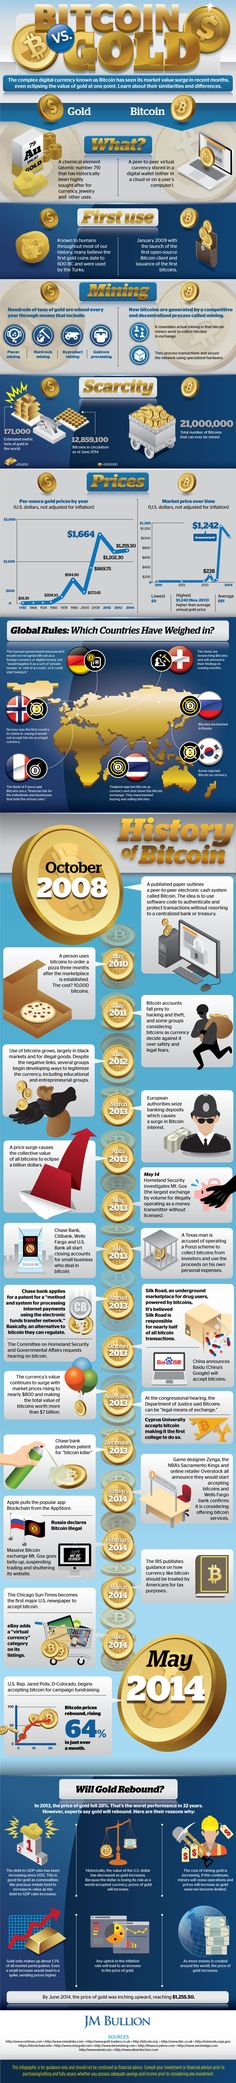 Infographic: Bitcoin vs. Gold #infographic